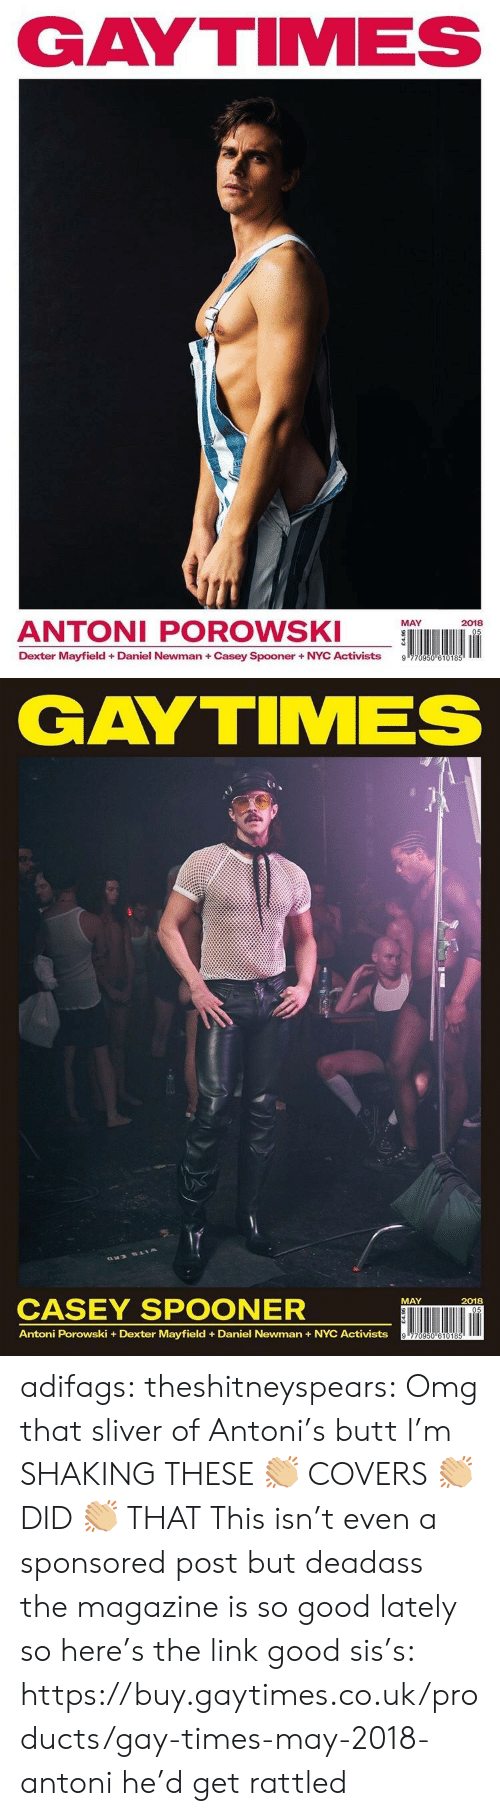 Dexter: GAYTIMES  ANTONI POROWS  MAY  2018  Dexter Mayfield + Daniel Newman + Casey Spooner + NYC Activists  9   GAYTIMES  CASEY SPOONER  ÜNI lin  MAY  2018  Antoni Porowski +Dexter Mayfield Daniel Newman+NYC Activists adifags:  theshitneyspears:  Omg that sliver of Antoni's butt I'm SHAKING THESE 👏🏼 COVERS 👏🏼 DID 👏🏼 THAT  This isn't even a sponsored post but deadass the magazine is so good lately so here's the link good sis's: https://buy.gaytimes.co.uk/products/gay-times-may-2018-antoni  he'd get rattled